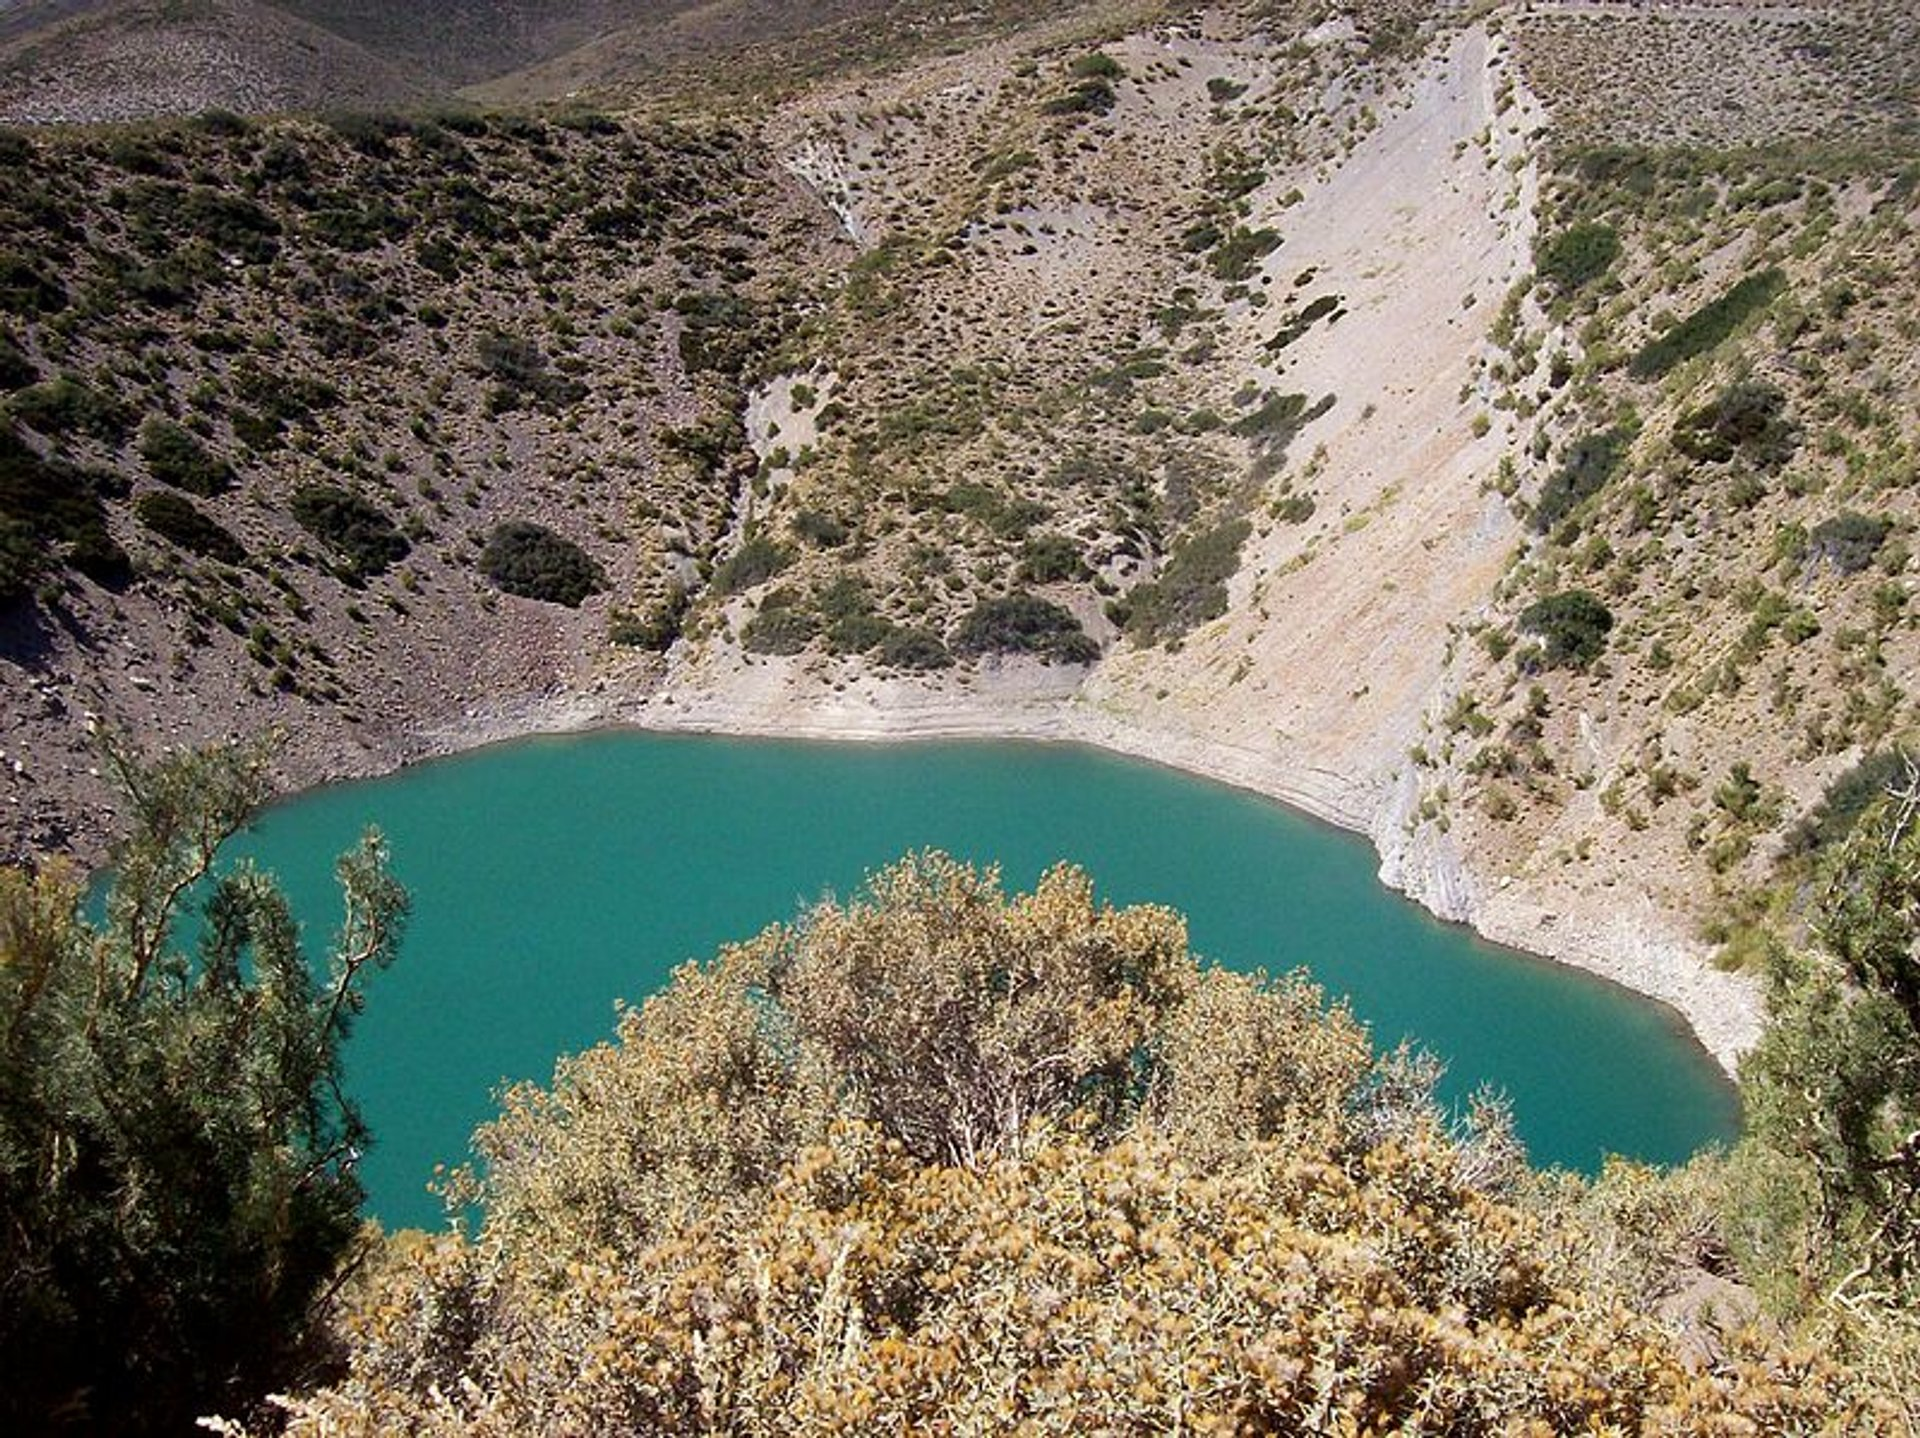 Best time for Pozo de las Animas (Well of Souls) in Argentina 2020